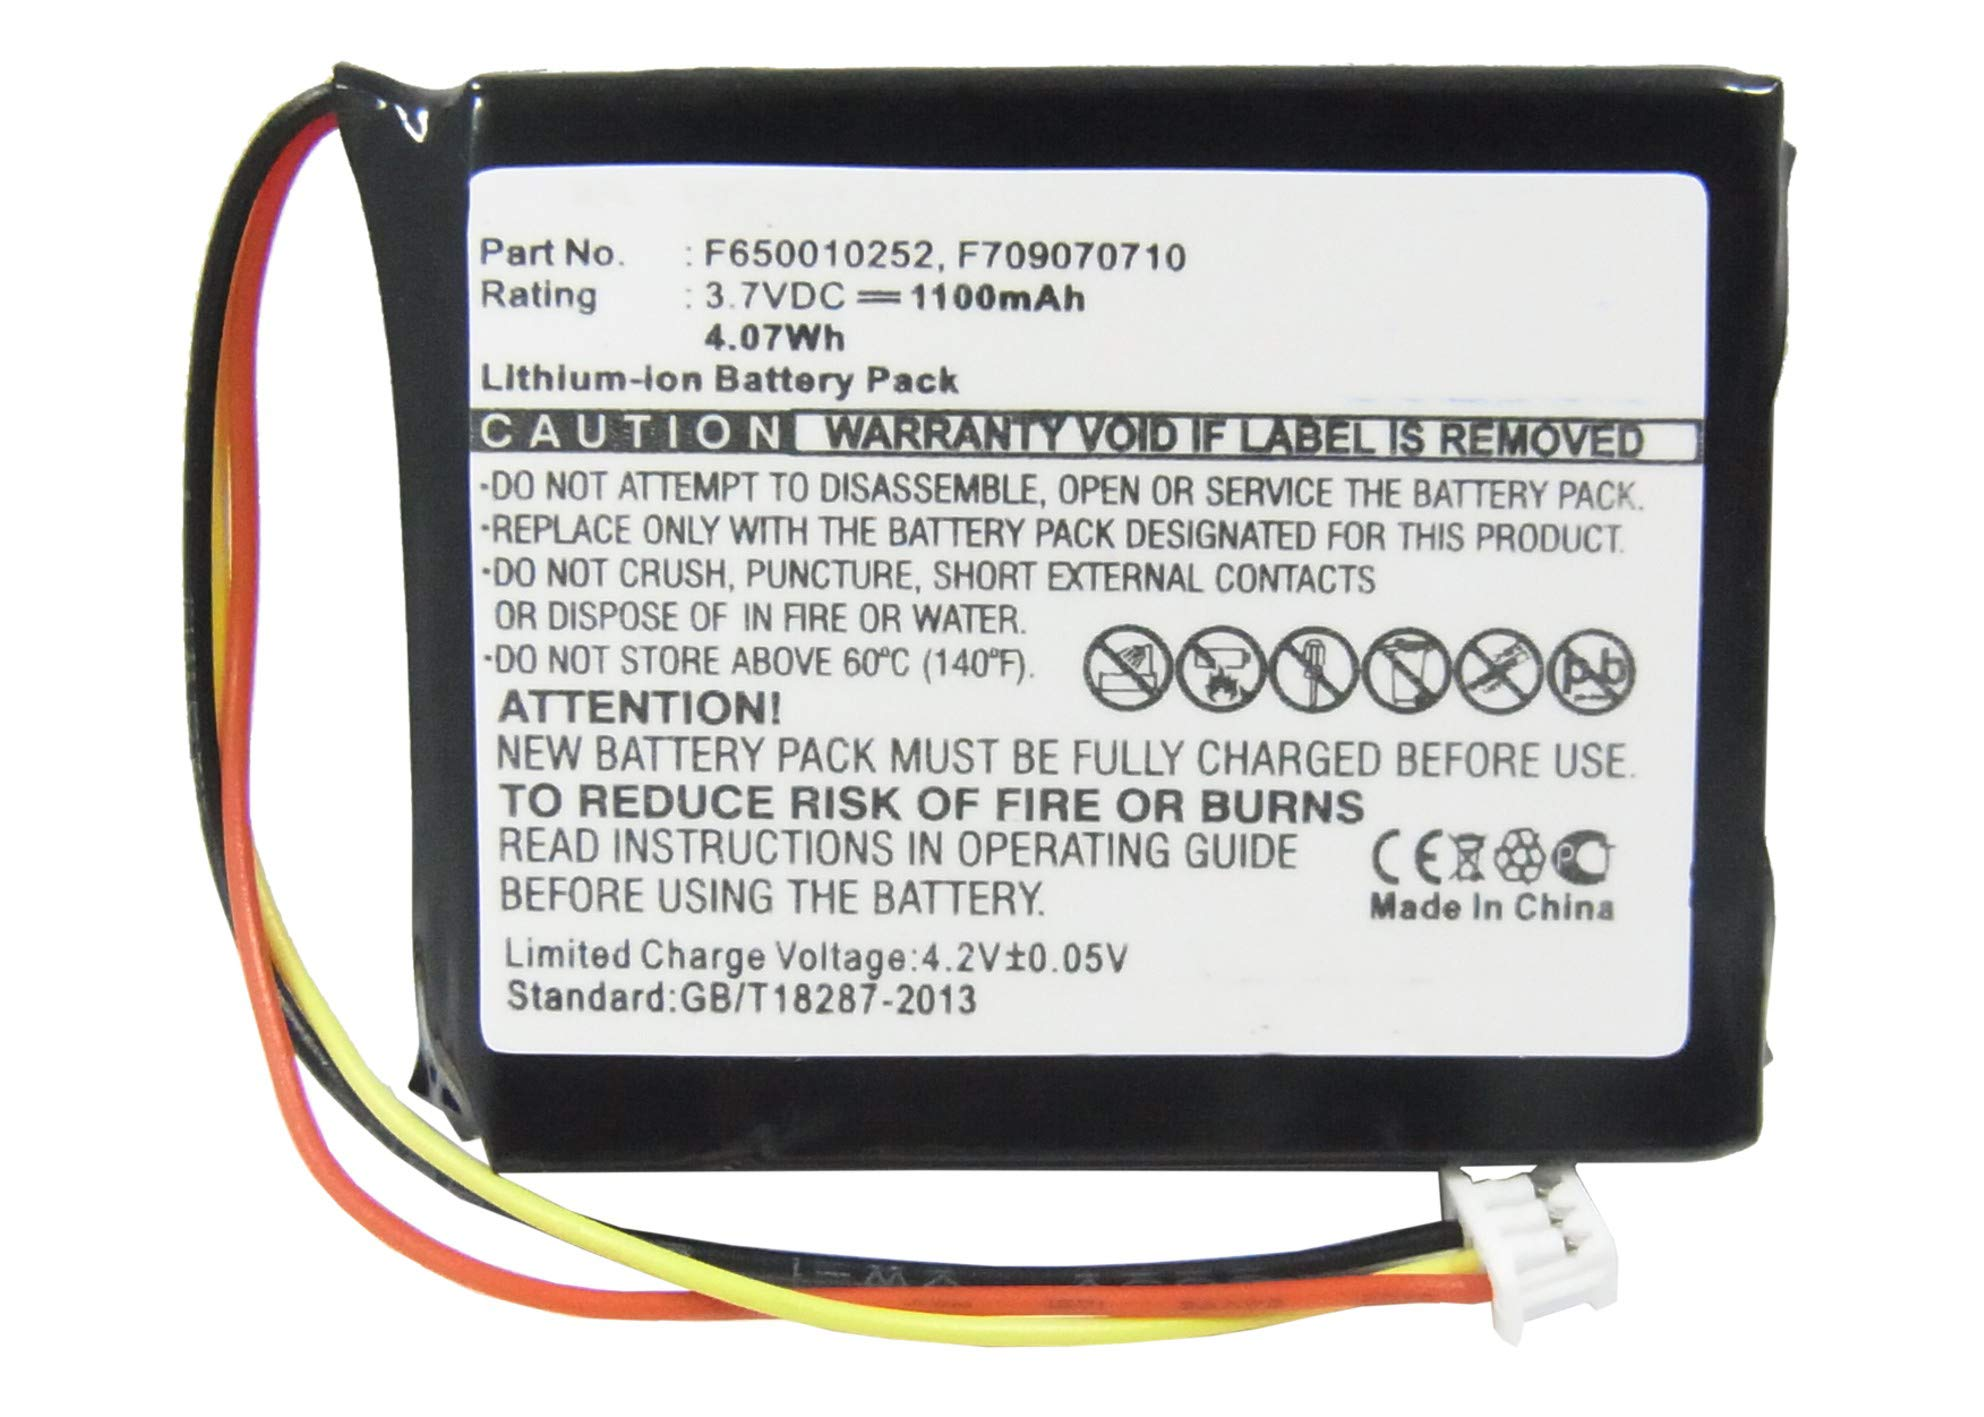 Synergy Digital Battery Compatible with Tomtom NVT2B225 GPS Battery (Li-Ion, 3.7V, 1100 mAh) - Repl. Tomtom F650010252 Battery